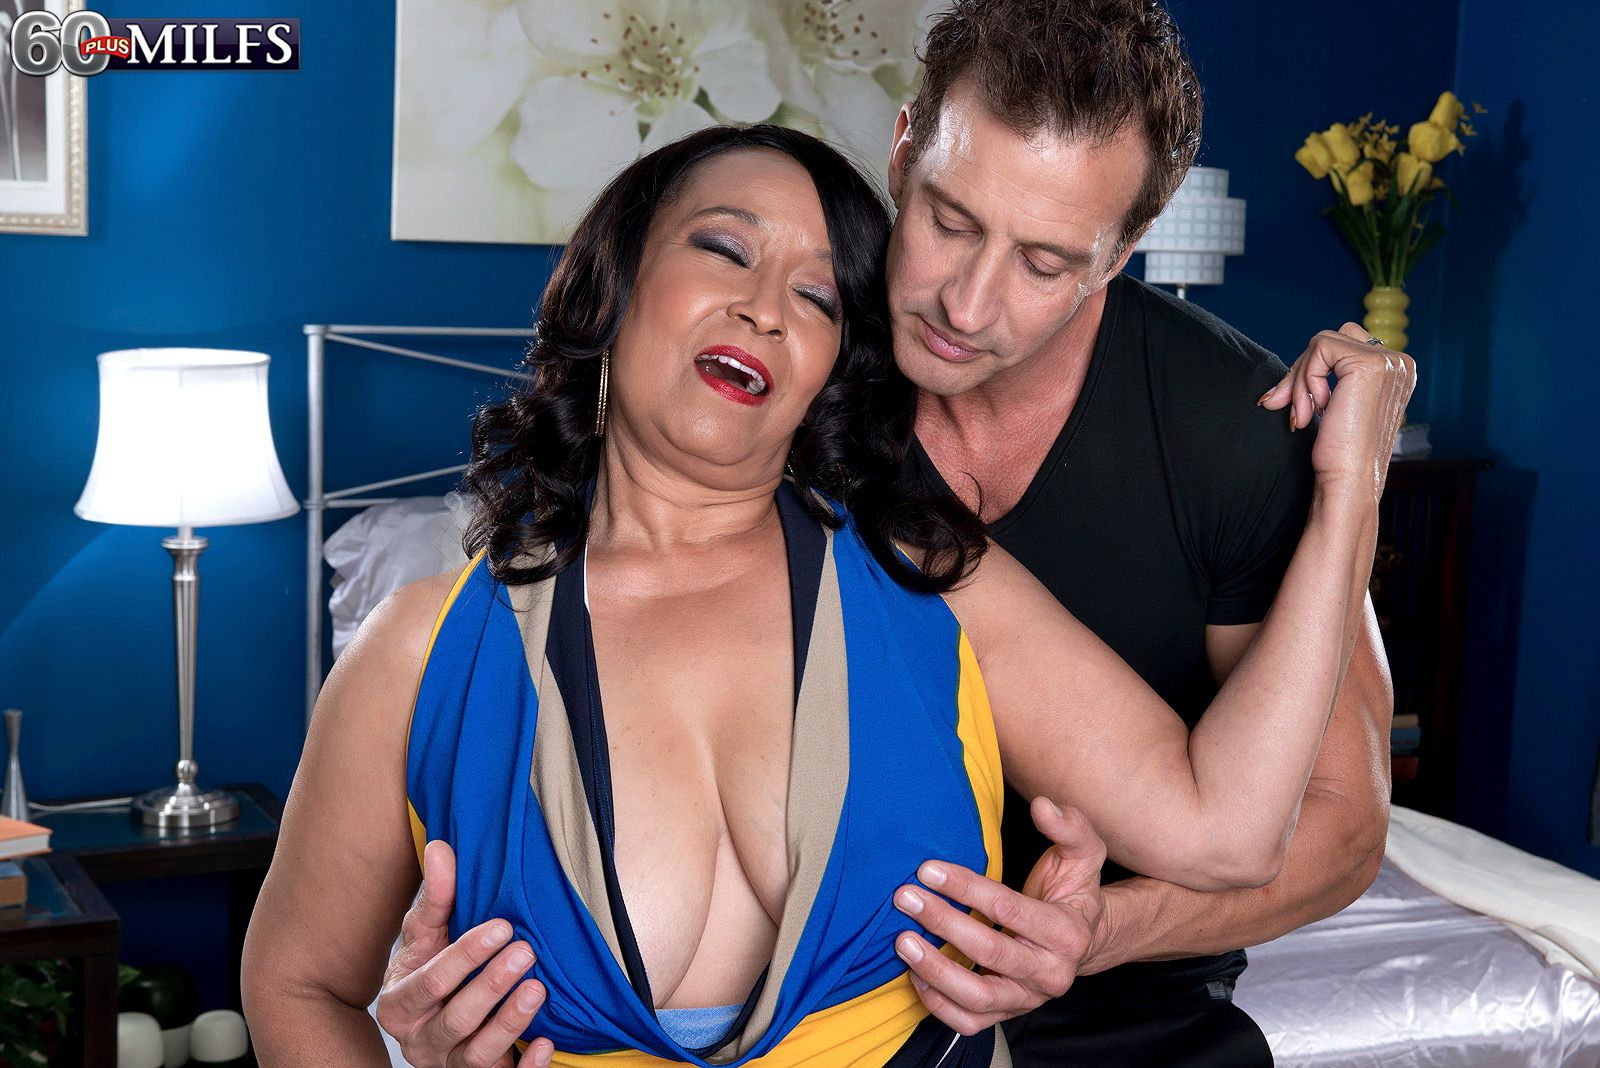 Chubby mature mom over 60 Rochelle Sweet having big boobs played with by man